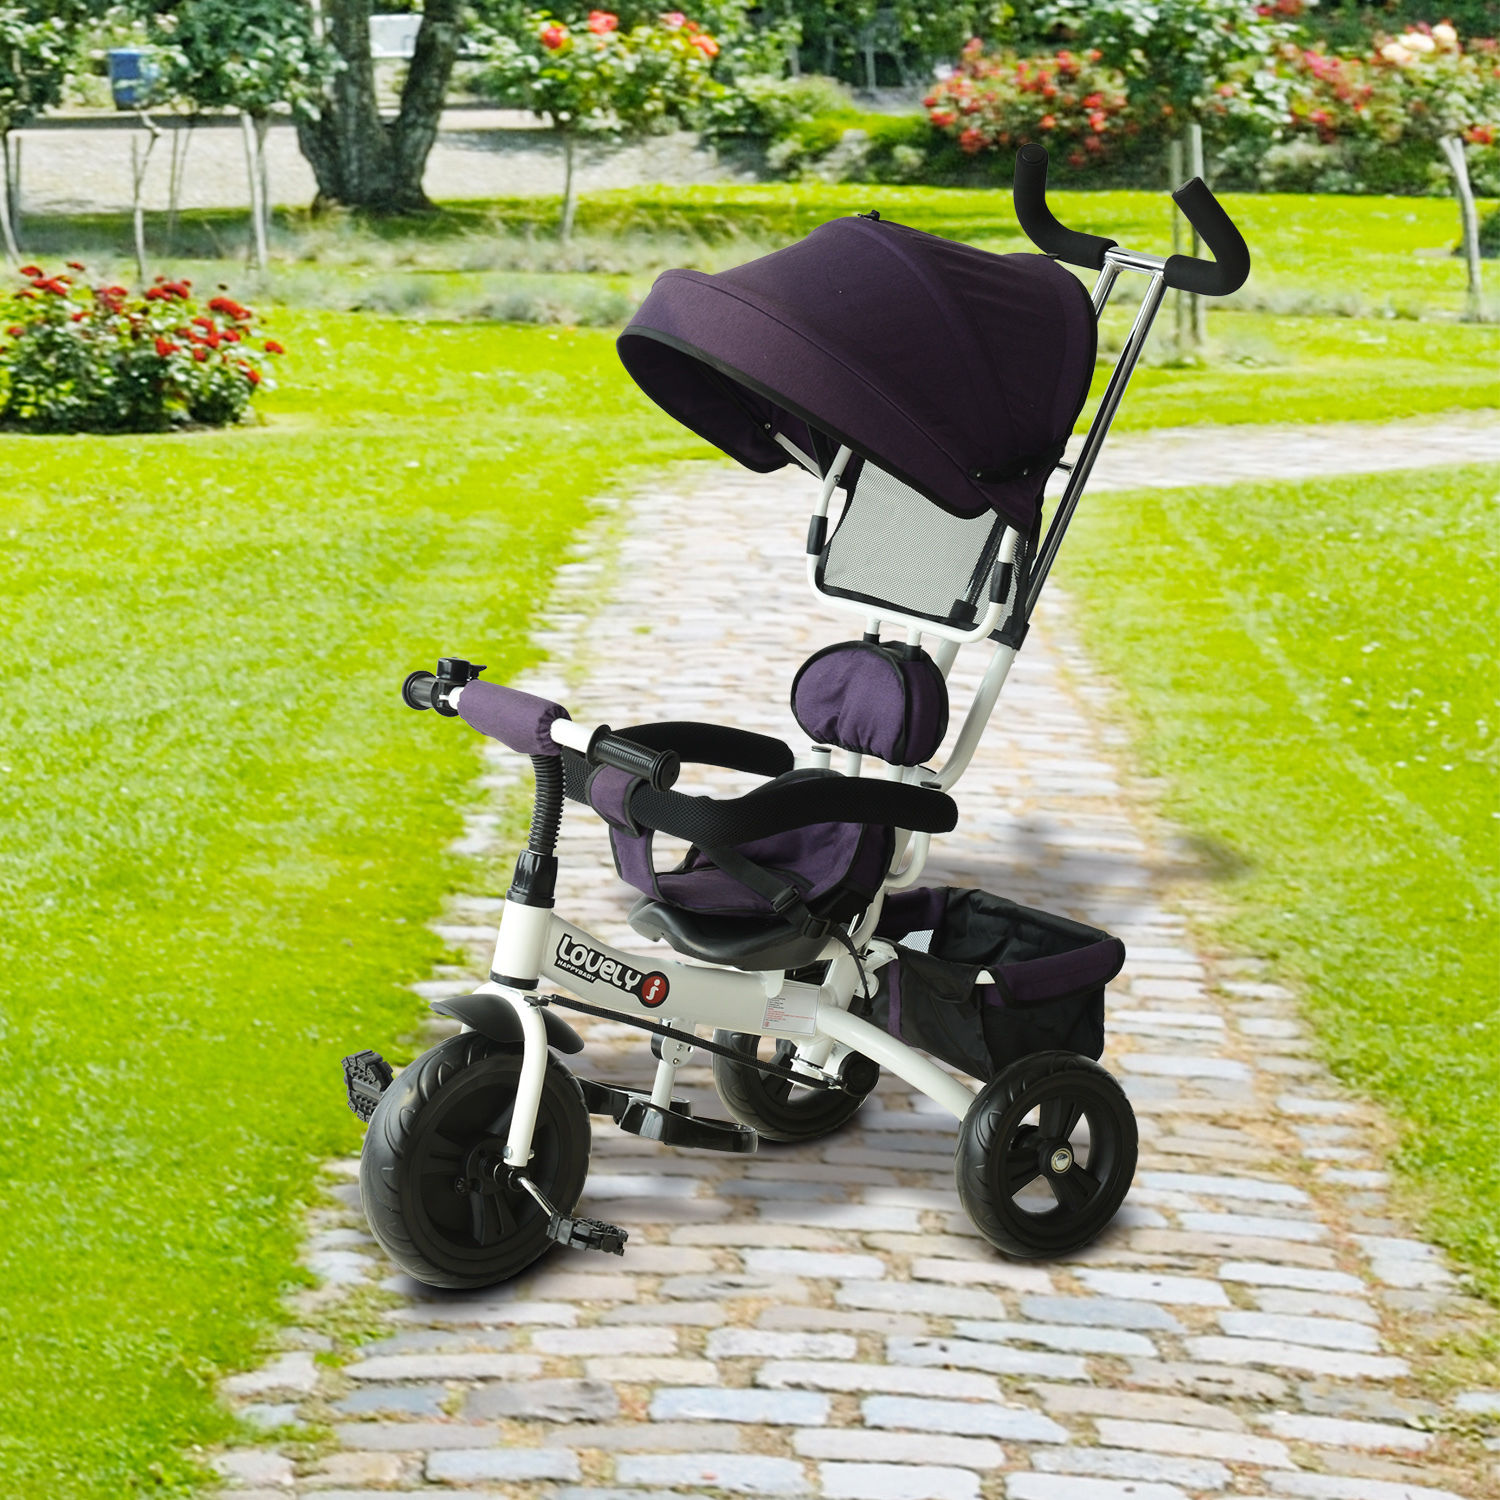 HOMCOM Kids Polyester Sun Canopy Ride-On Tricycle w/ Parent Handle Purple